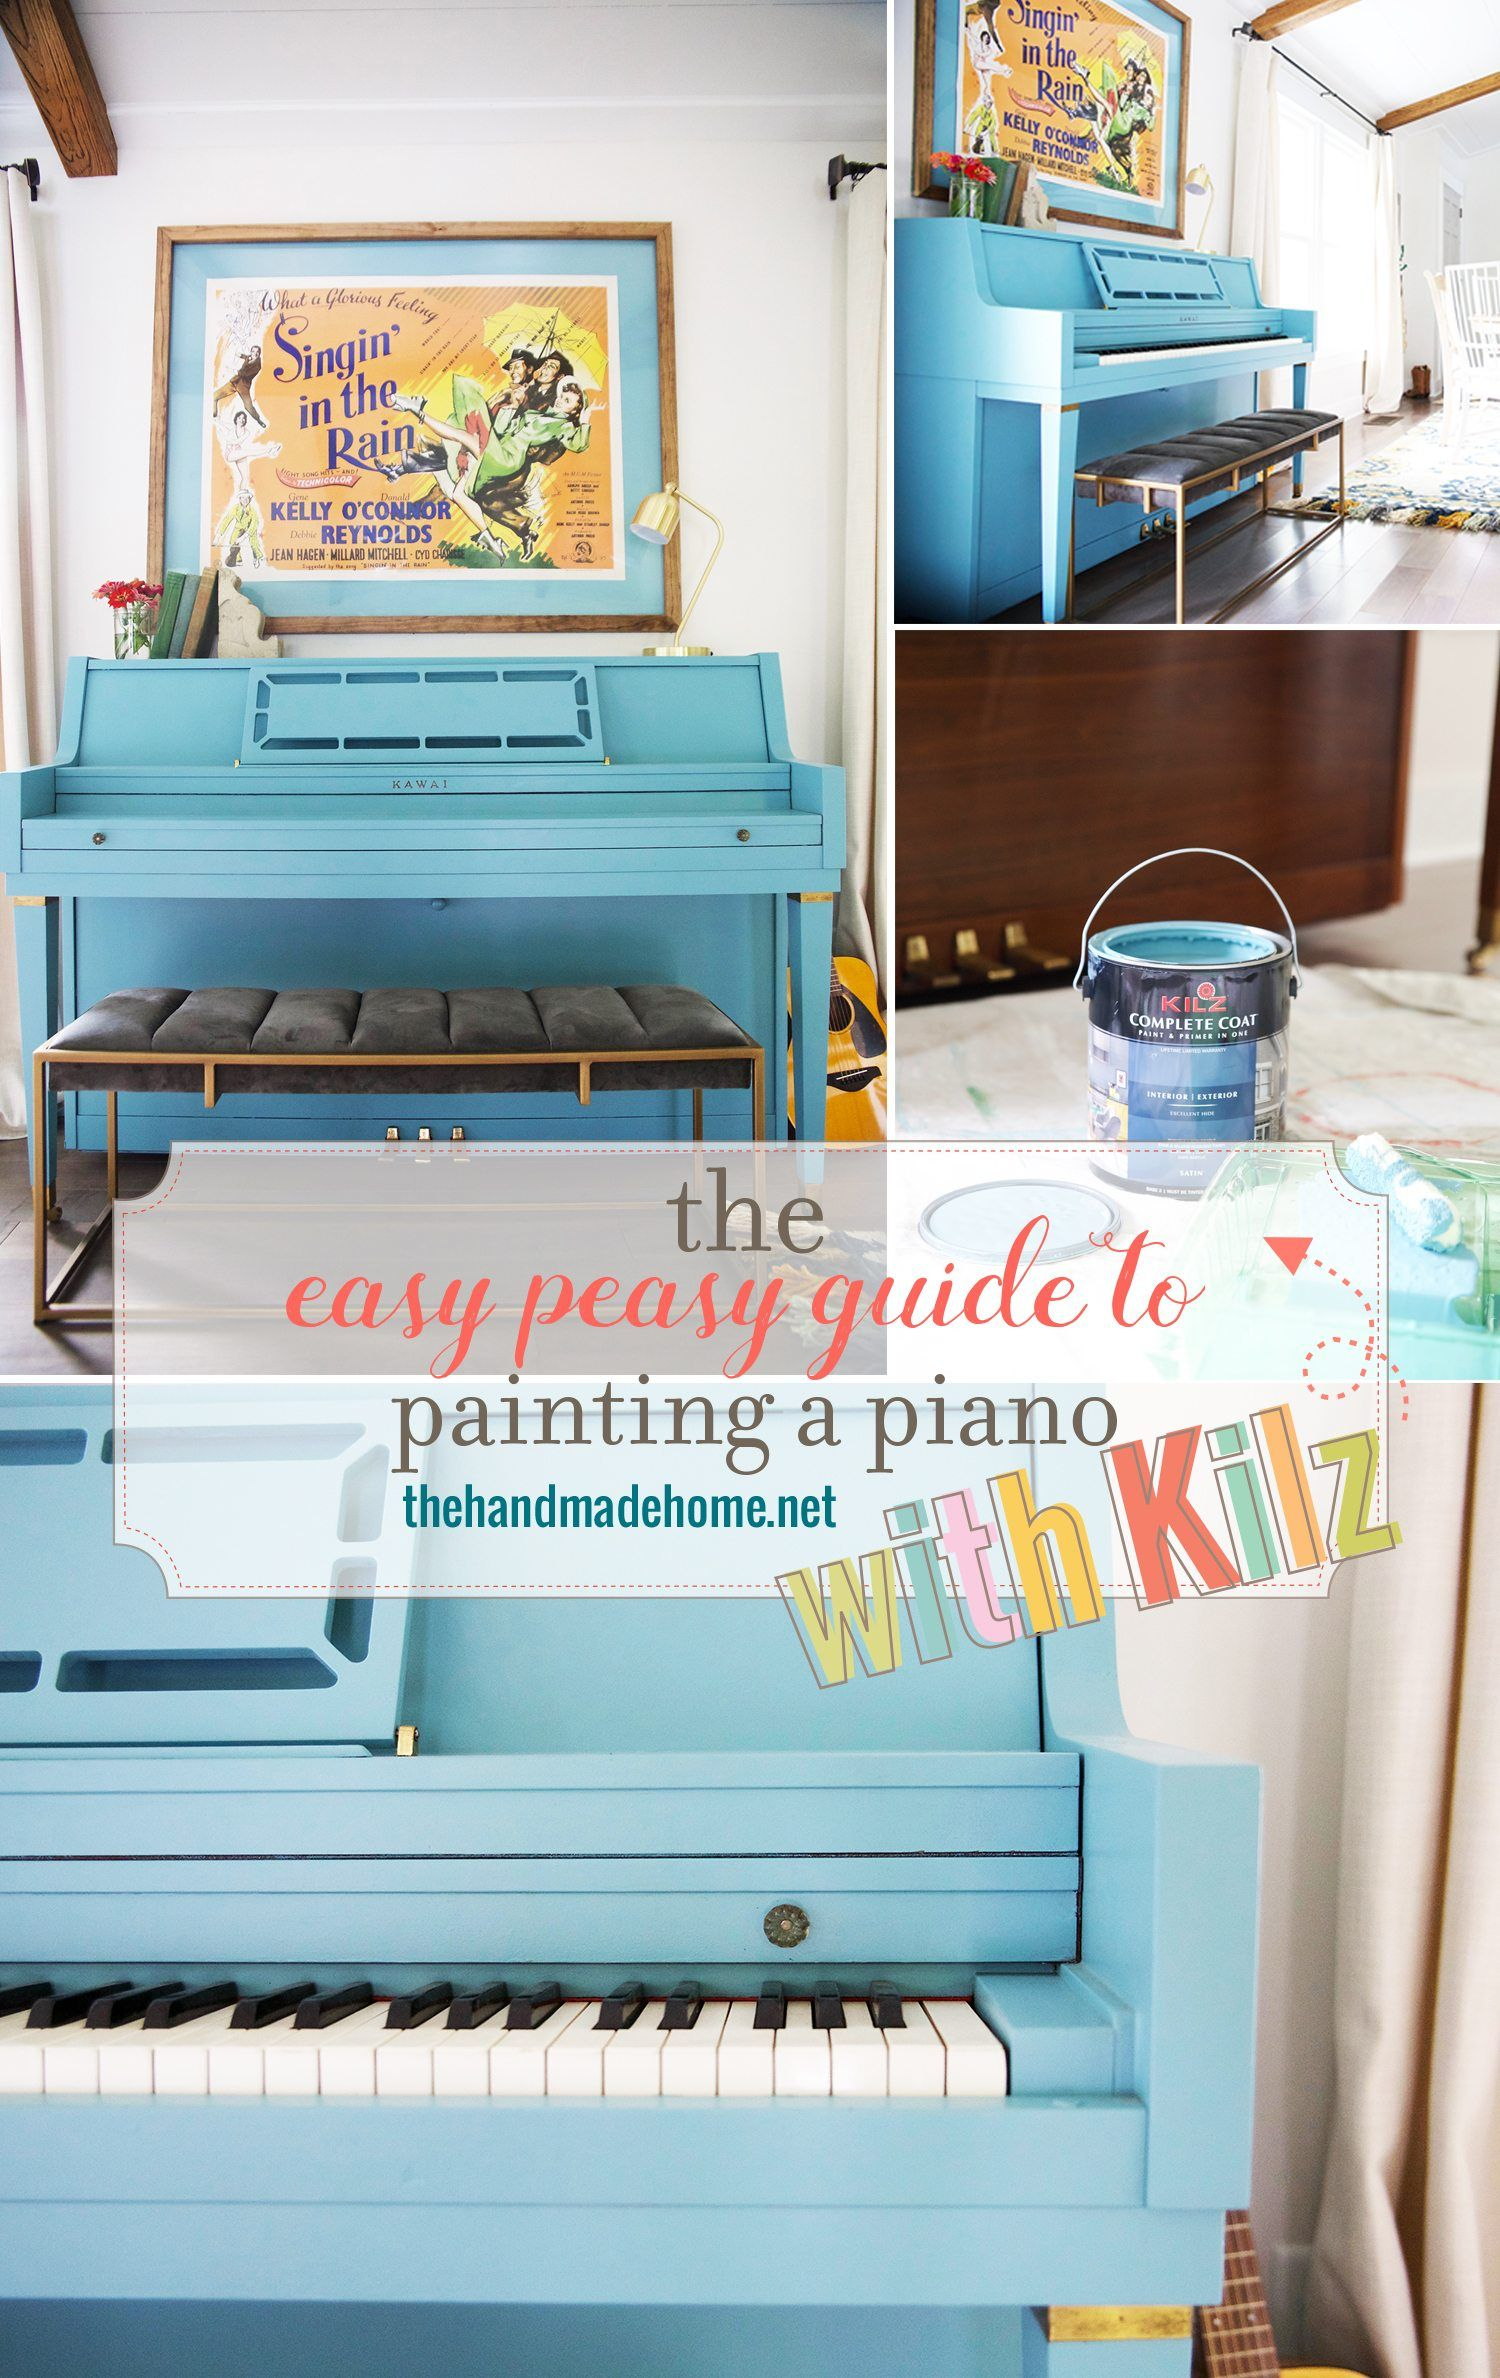 the easy peasy guide to painting a